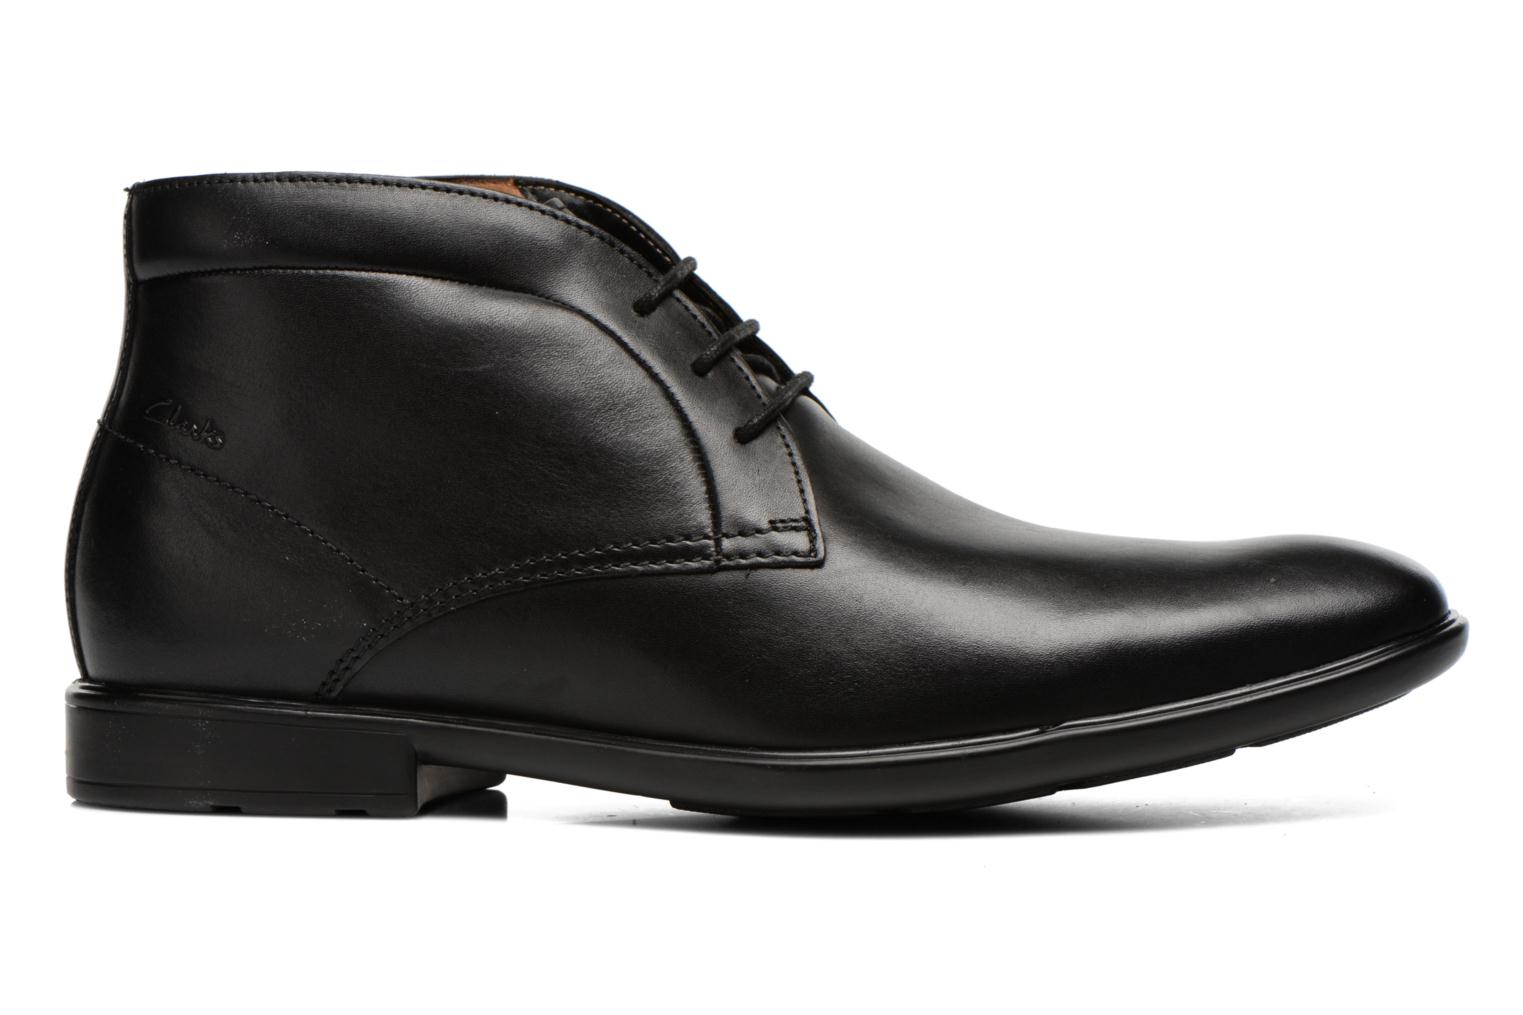 Gosworth Hi Black leather